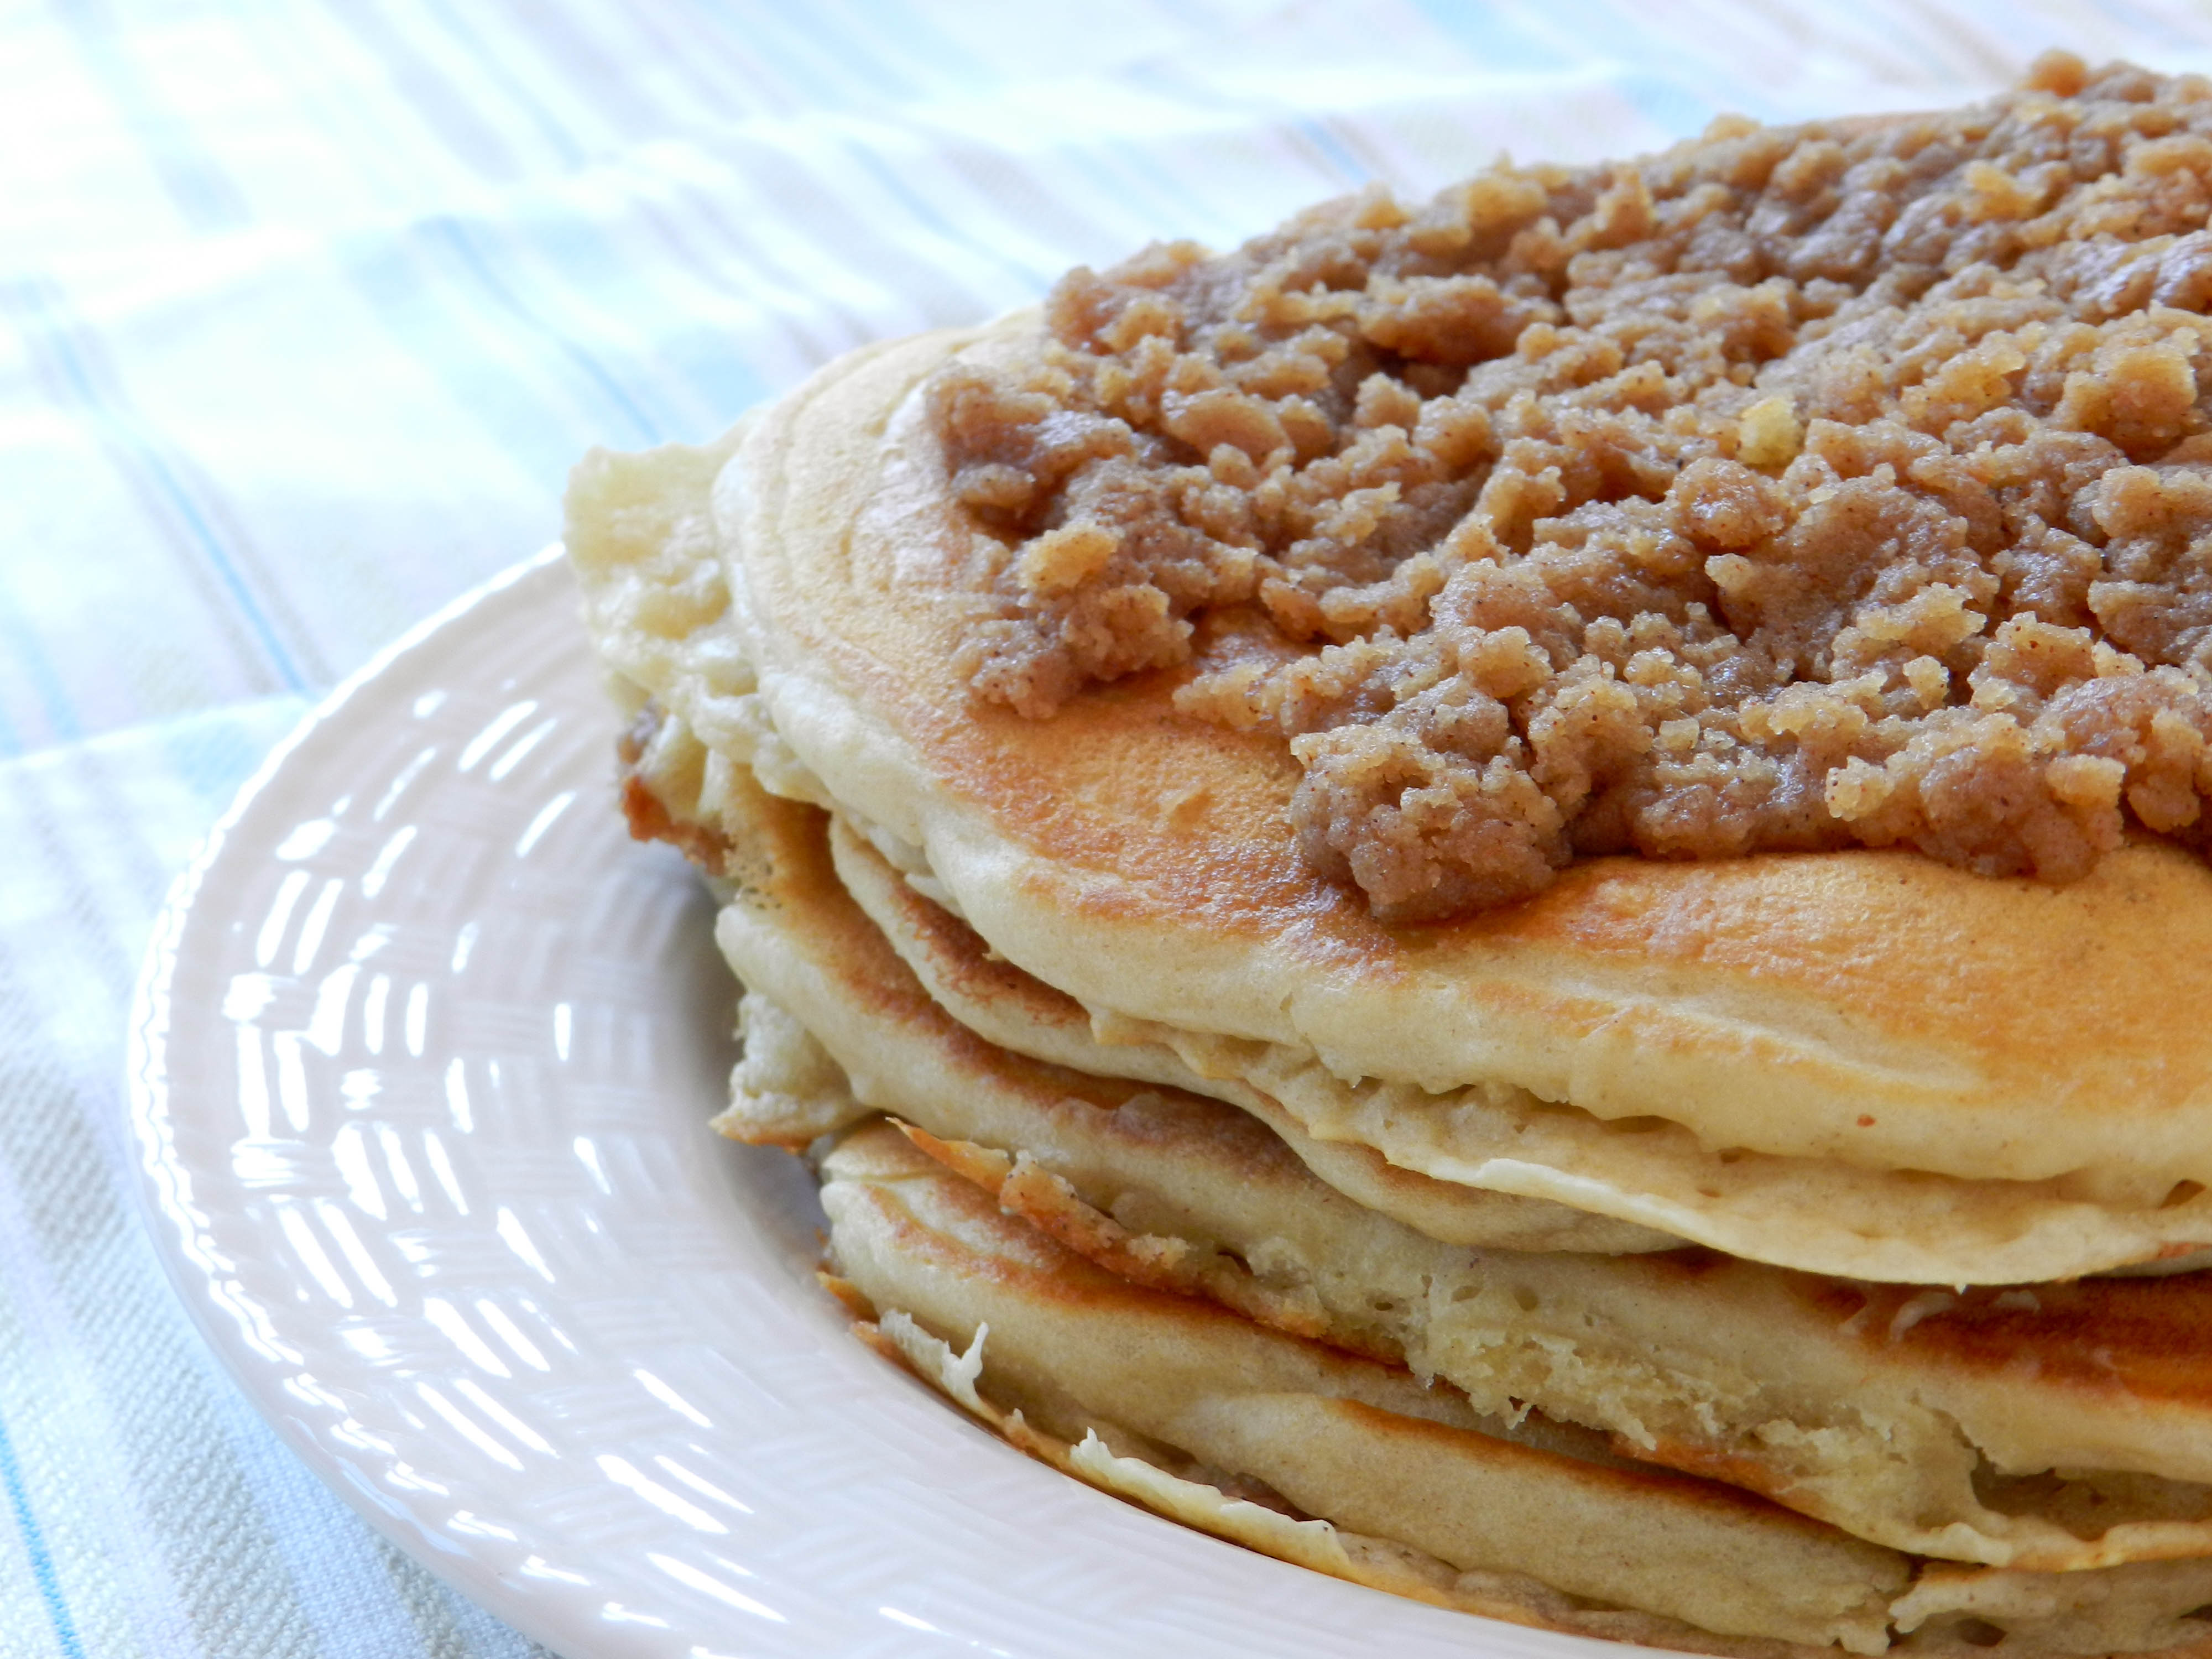 ... Pancake Week! Forget Mardi Gras! Let's eat pancakes all week because